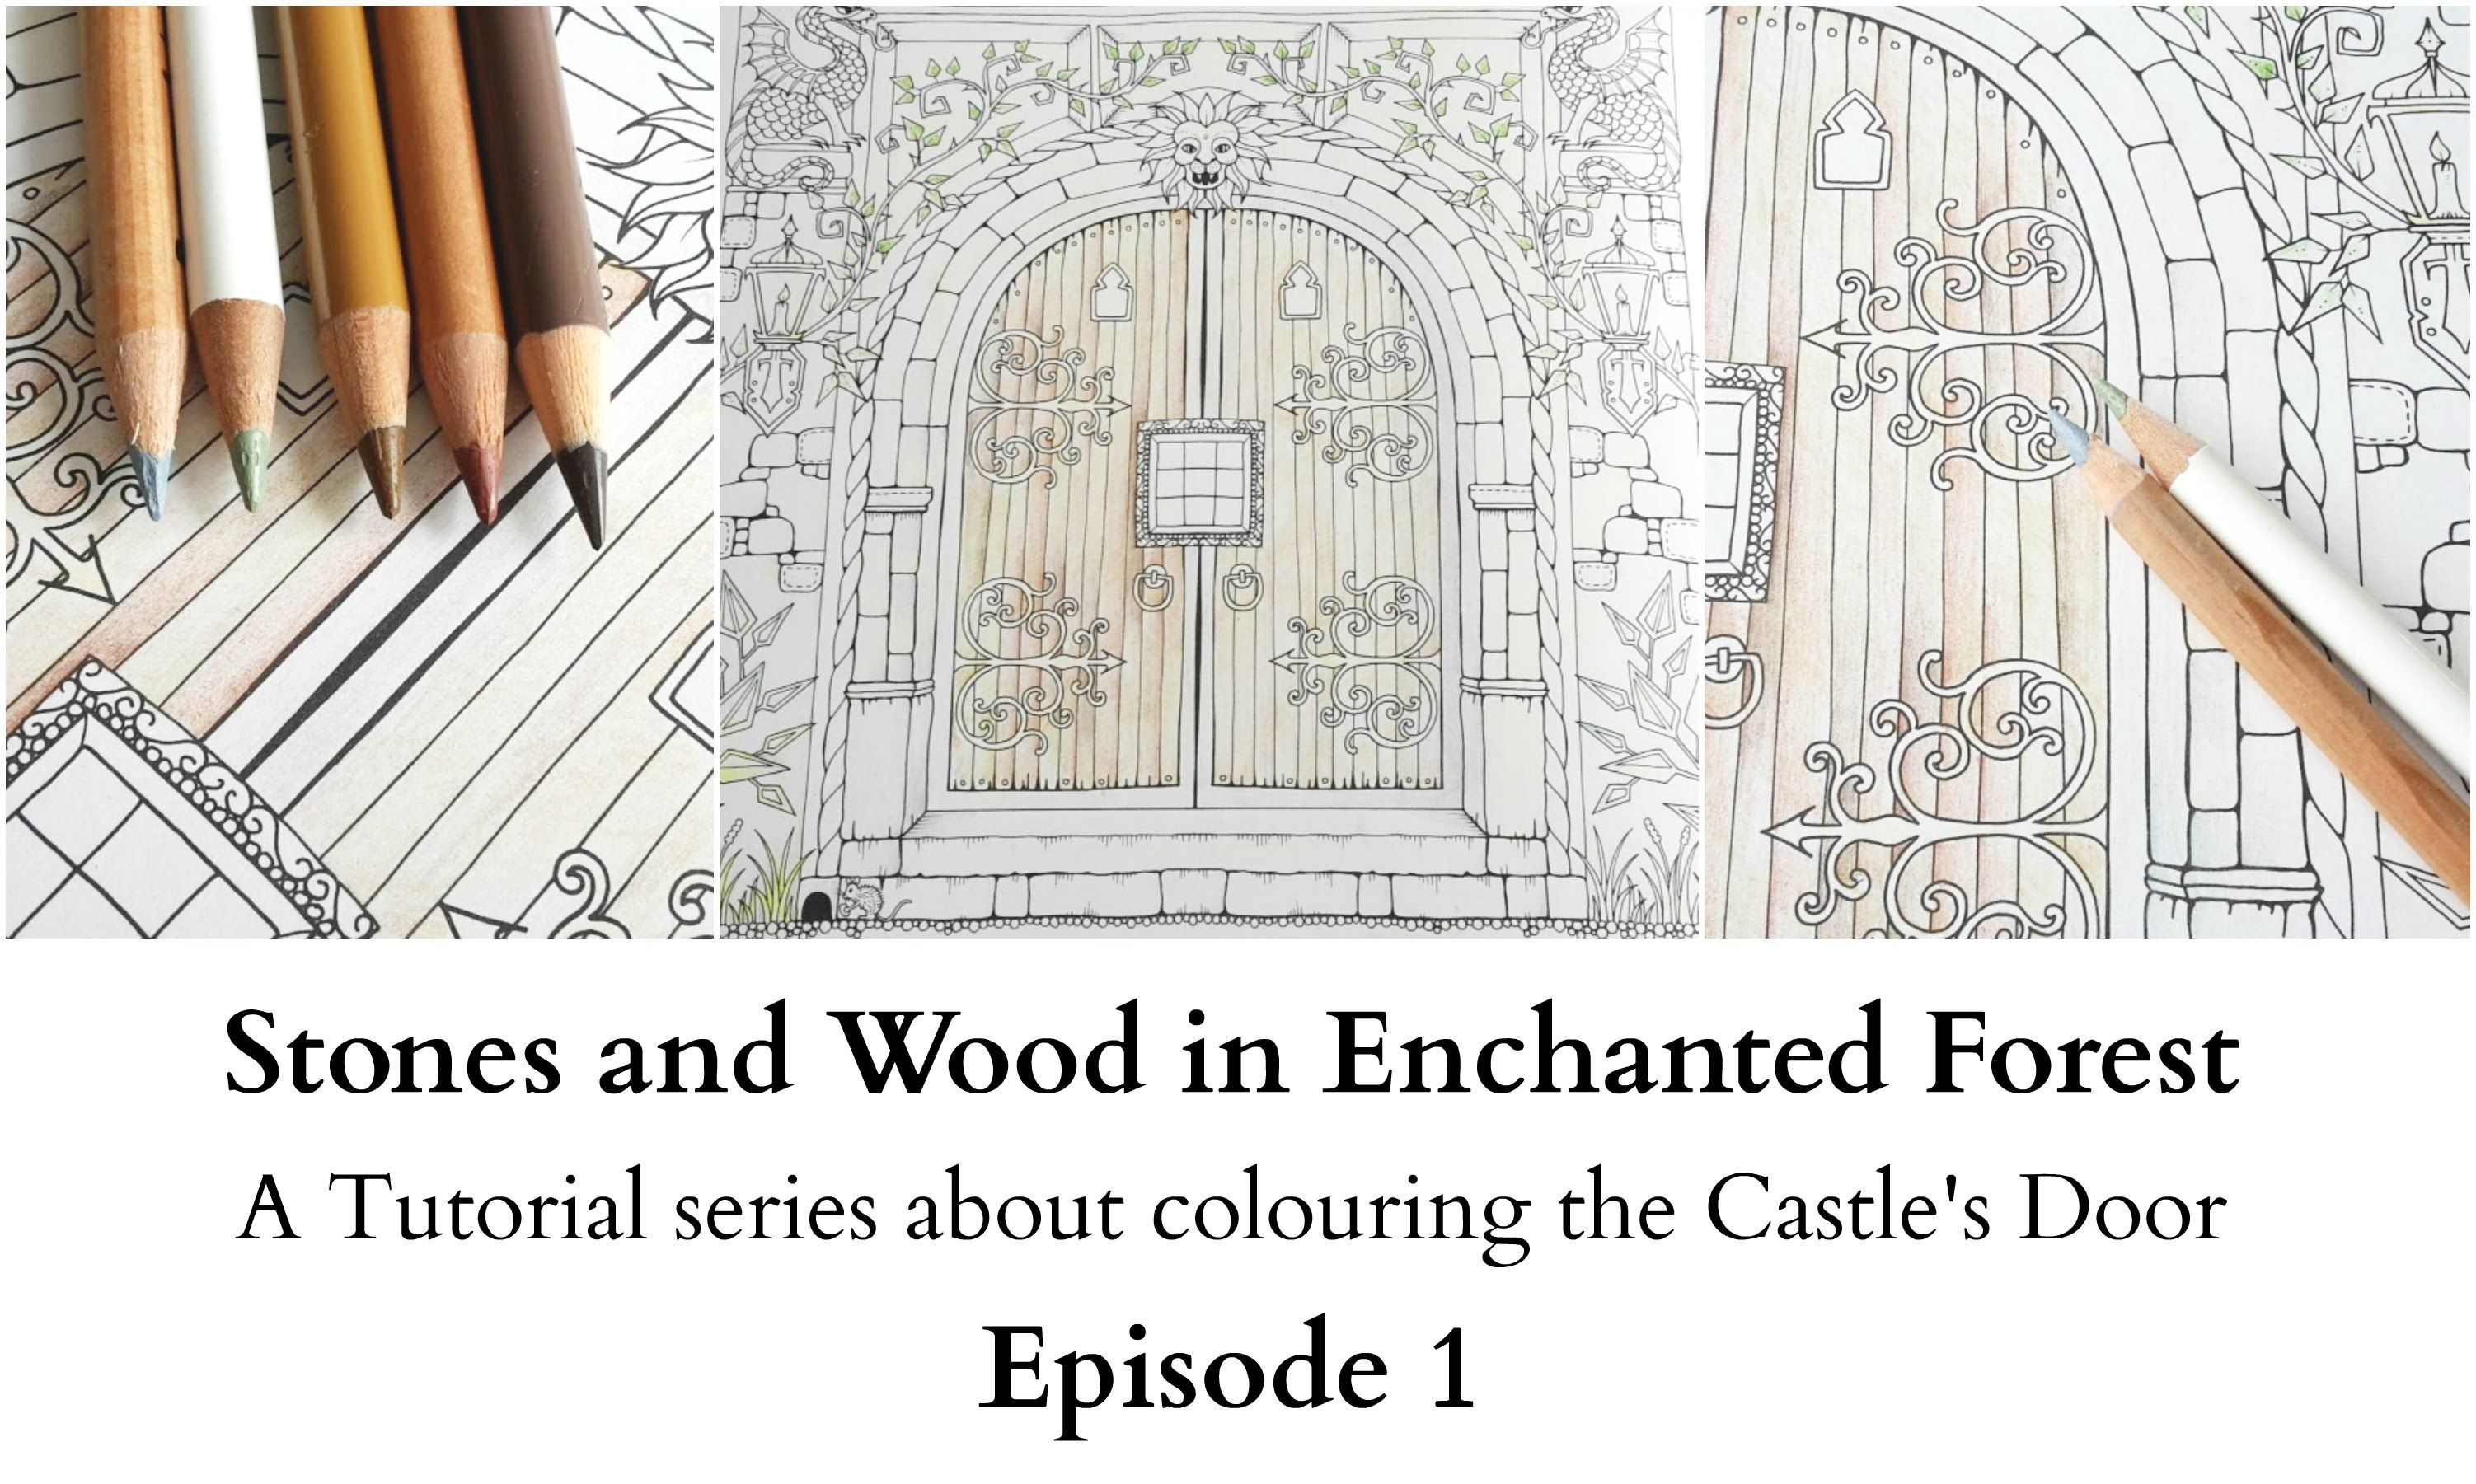 Stones and Wood in Enchanted Forest - Episode 1